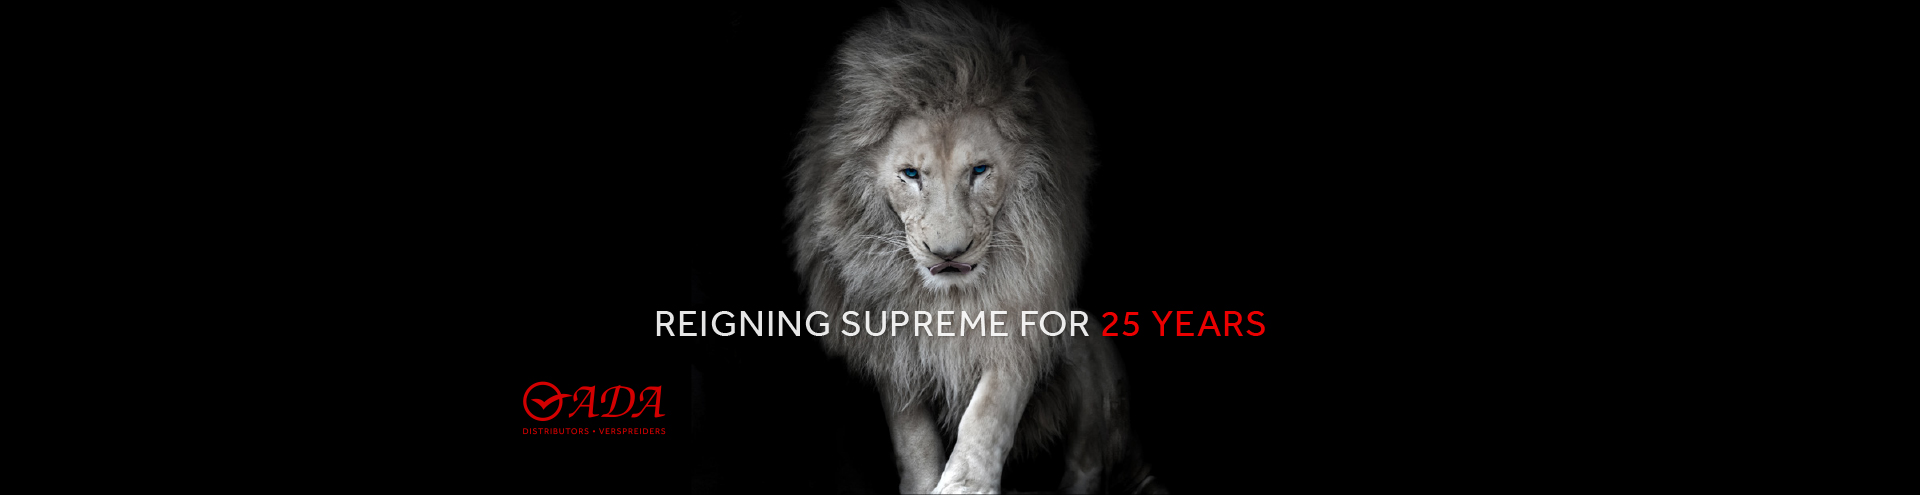 Reigning supreme for 25 years